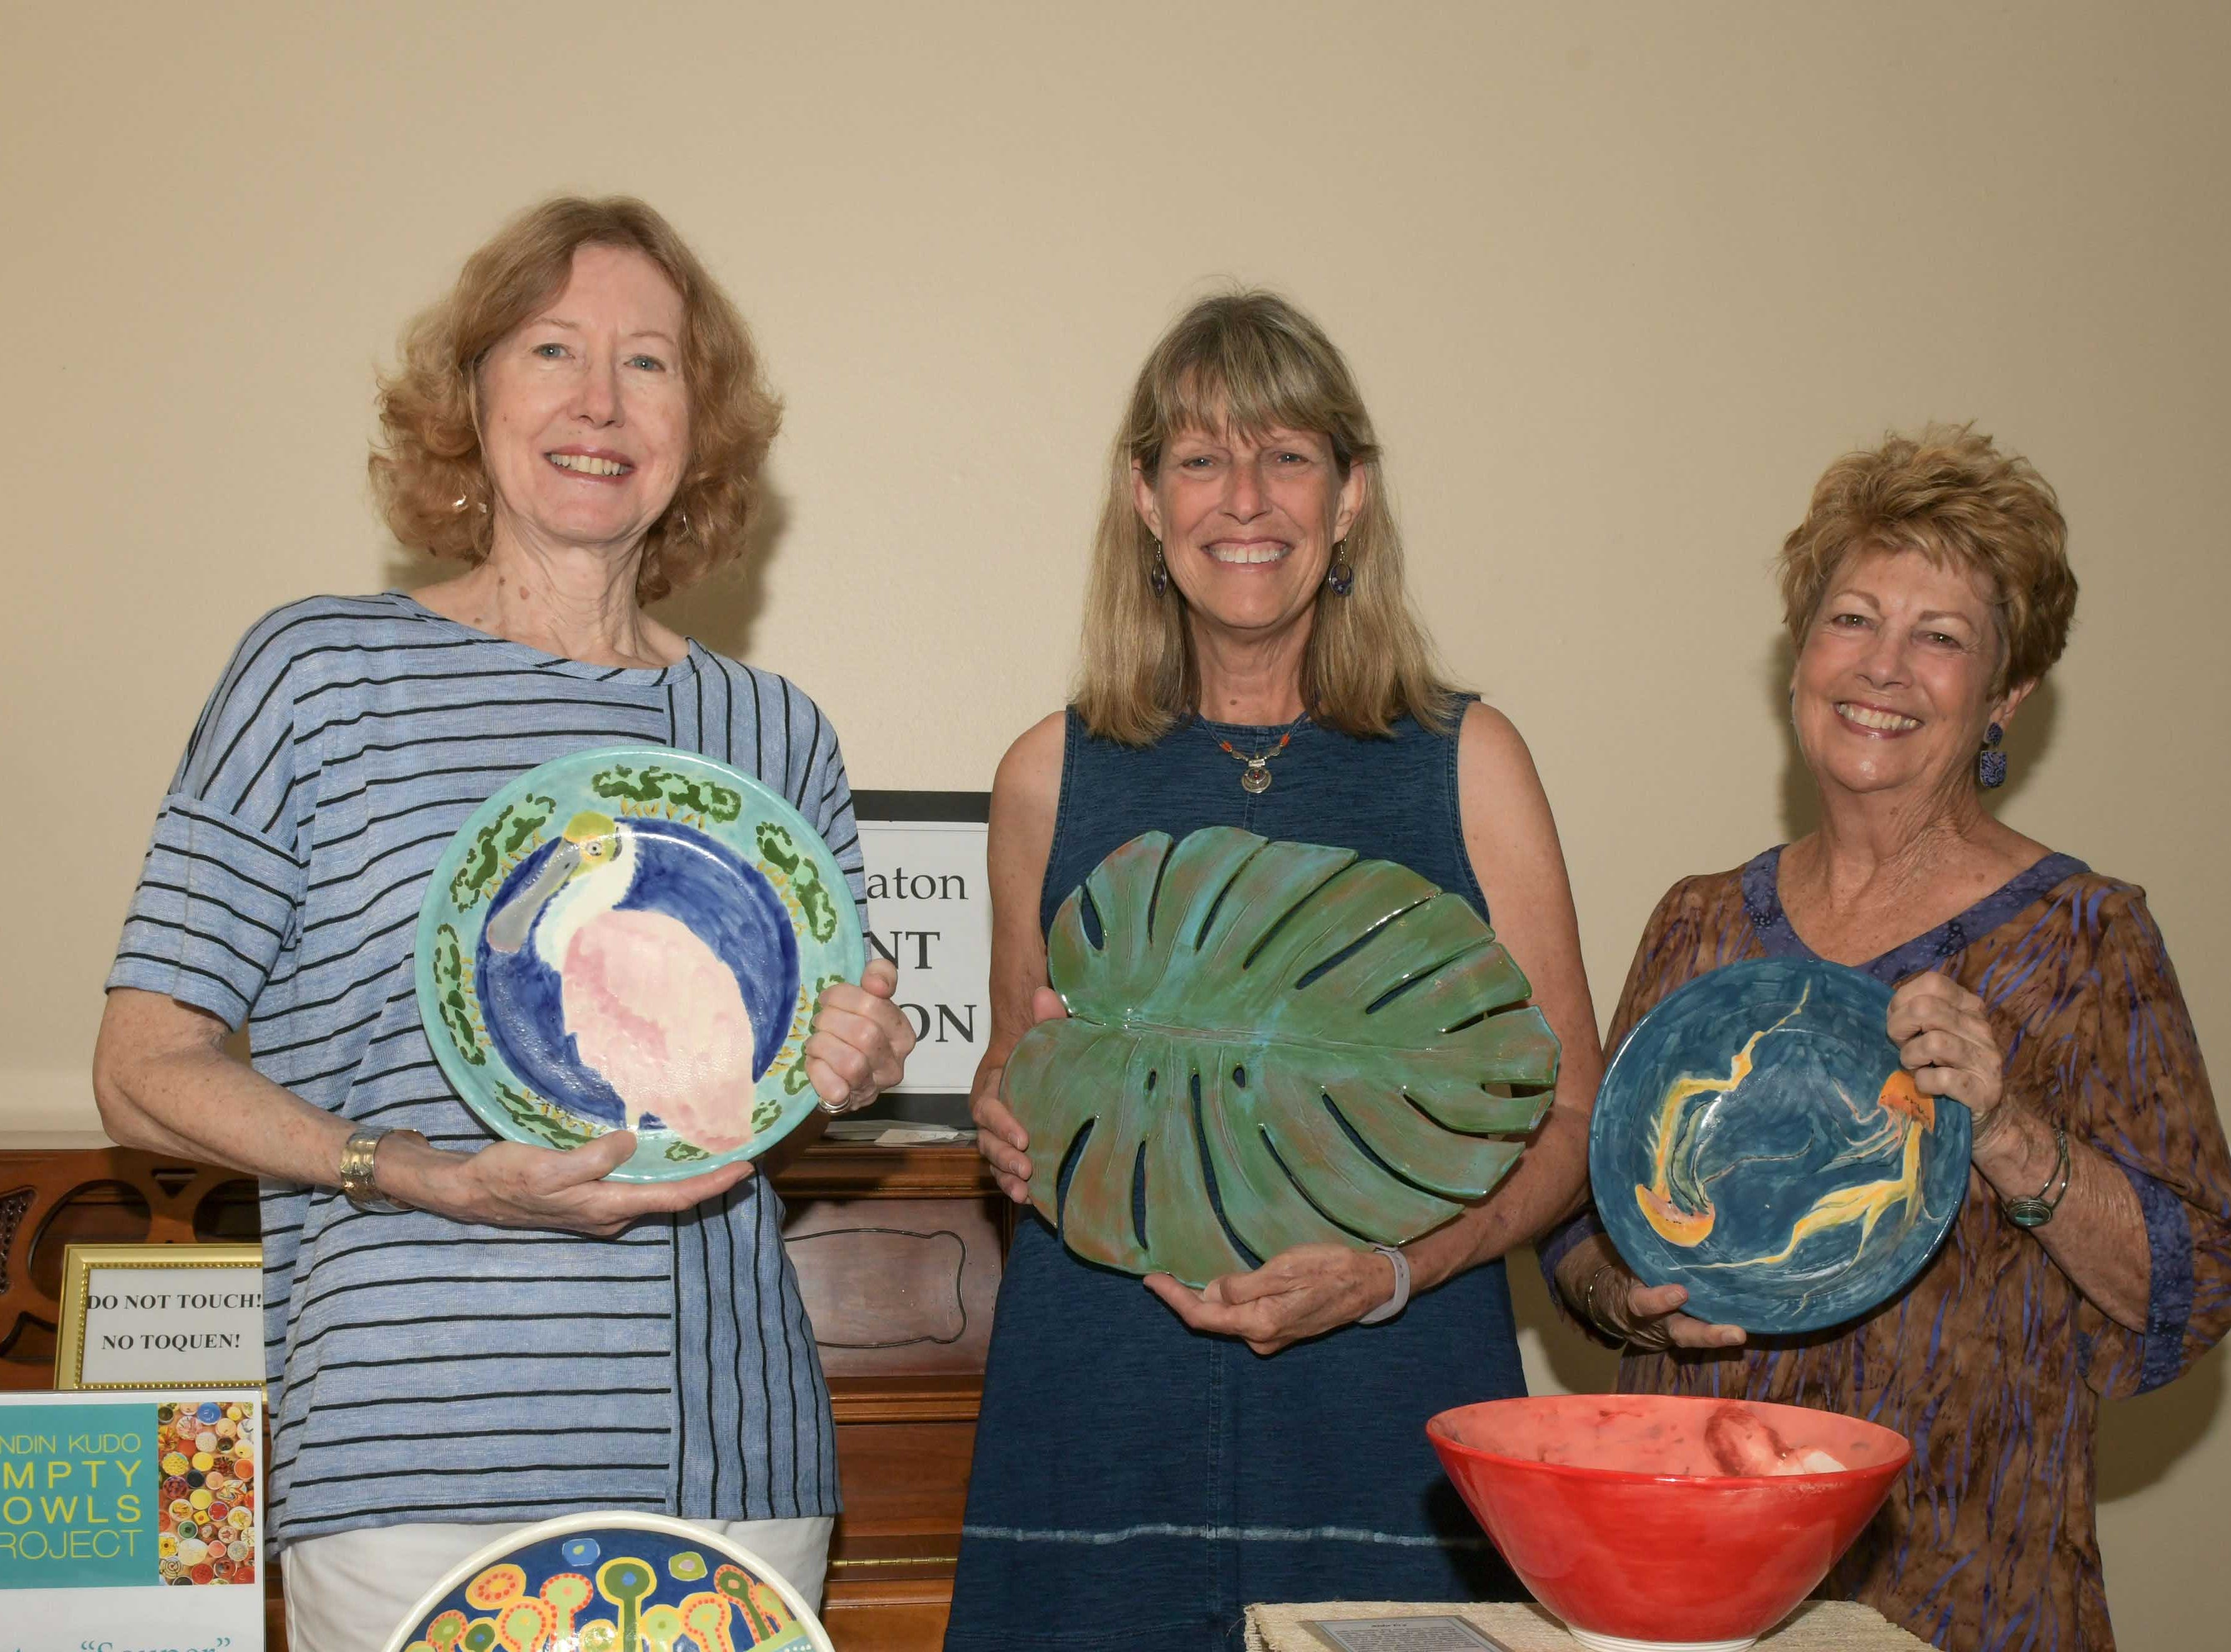 Patrice Scott, Diane Ayer and Kathy Saigh at the 13th annual Lundin Kudo Empty Bowls Project at the Woman's Club of Stuart.